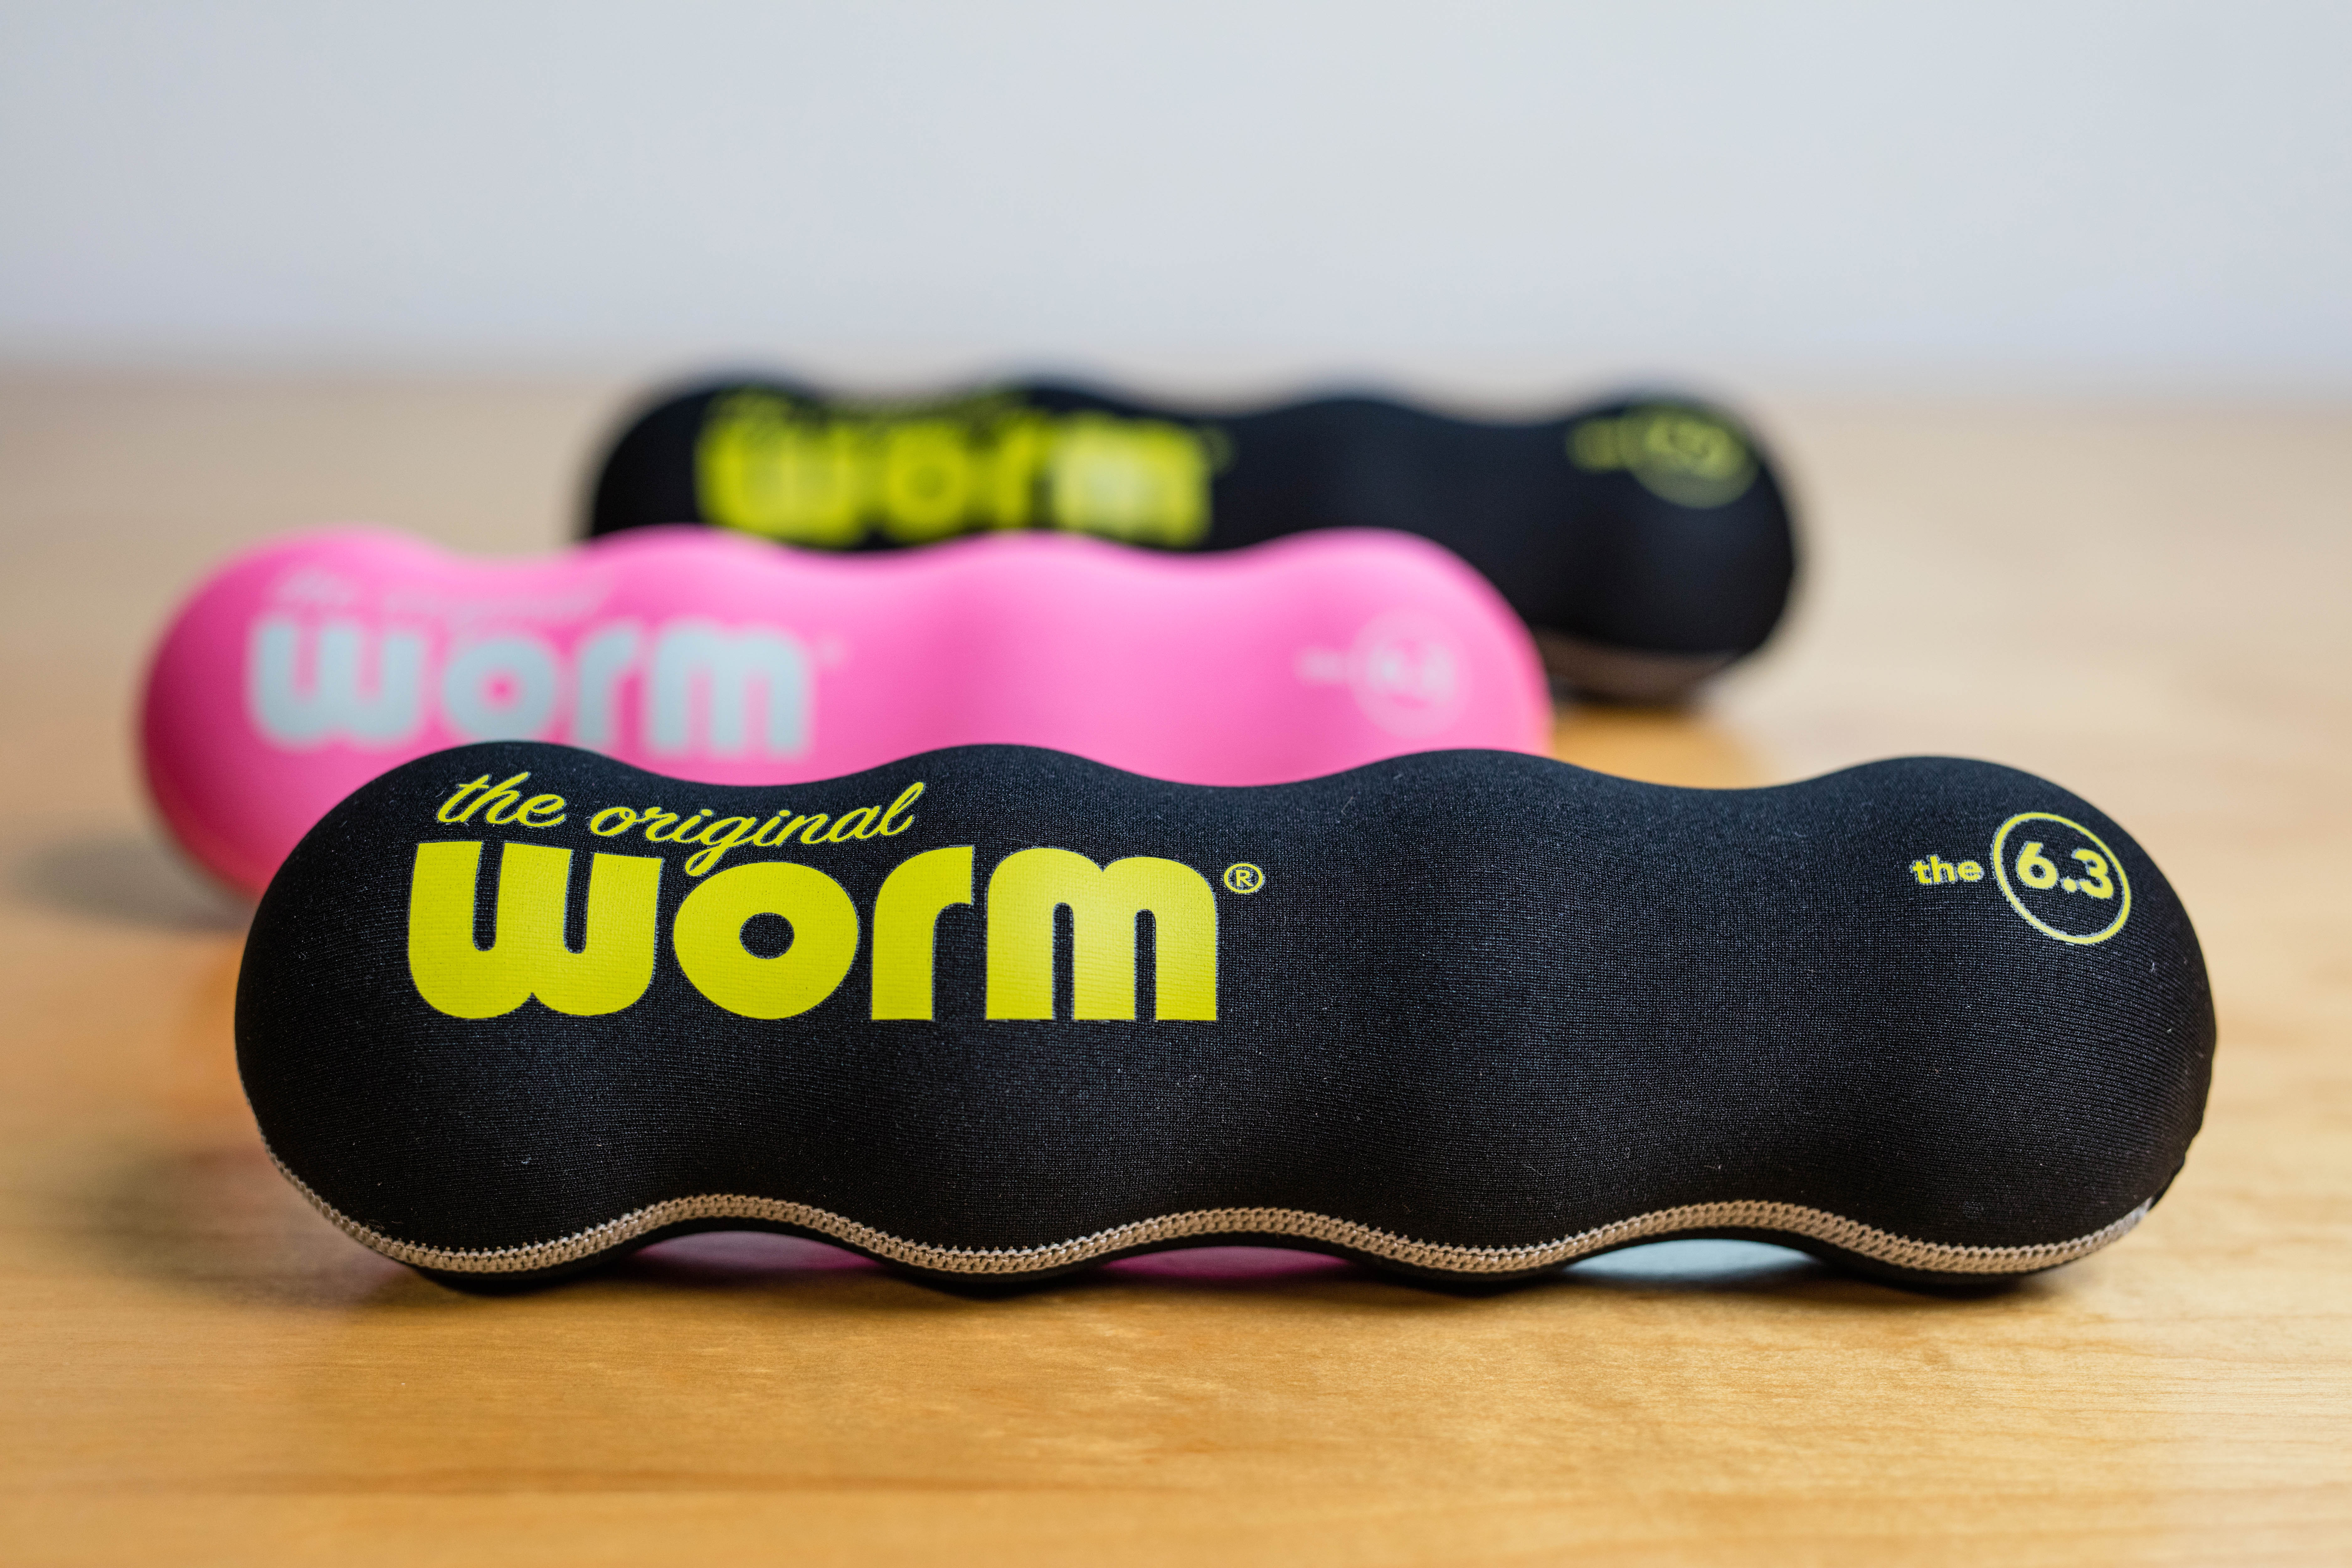 Enter to win the original worm